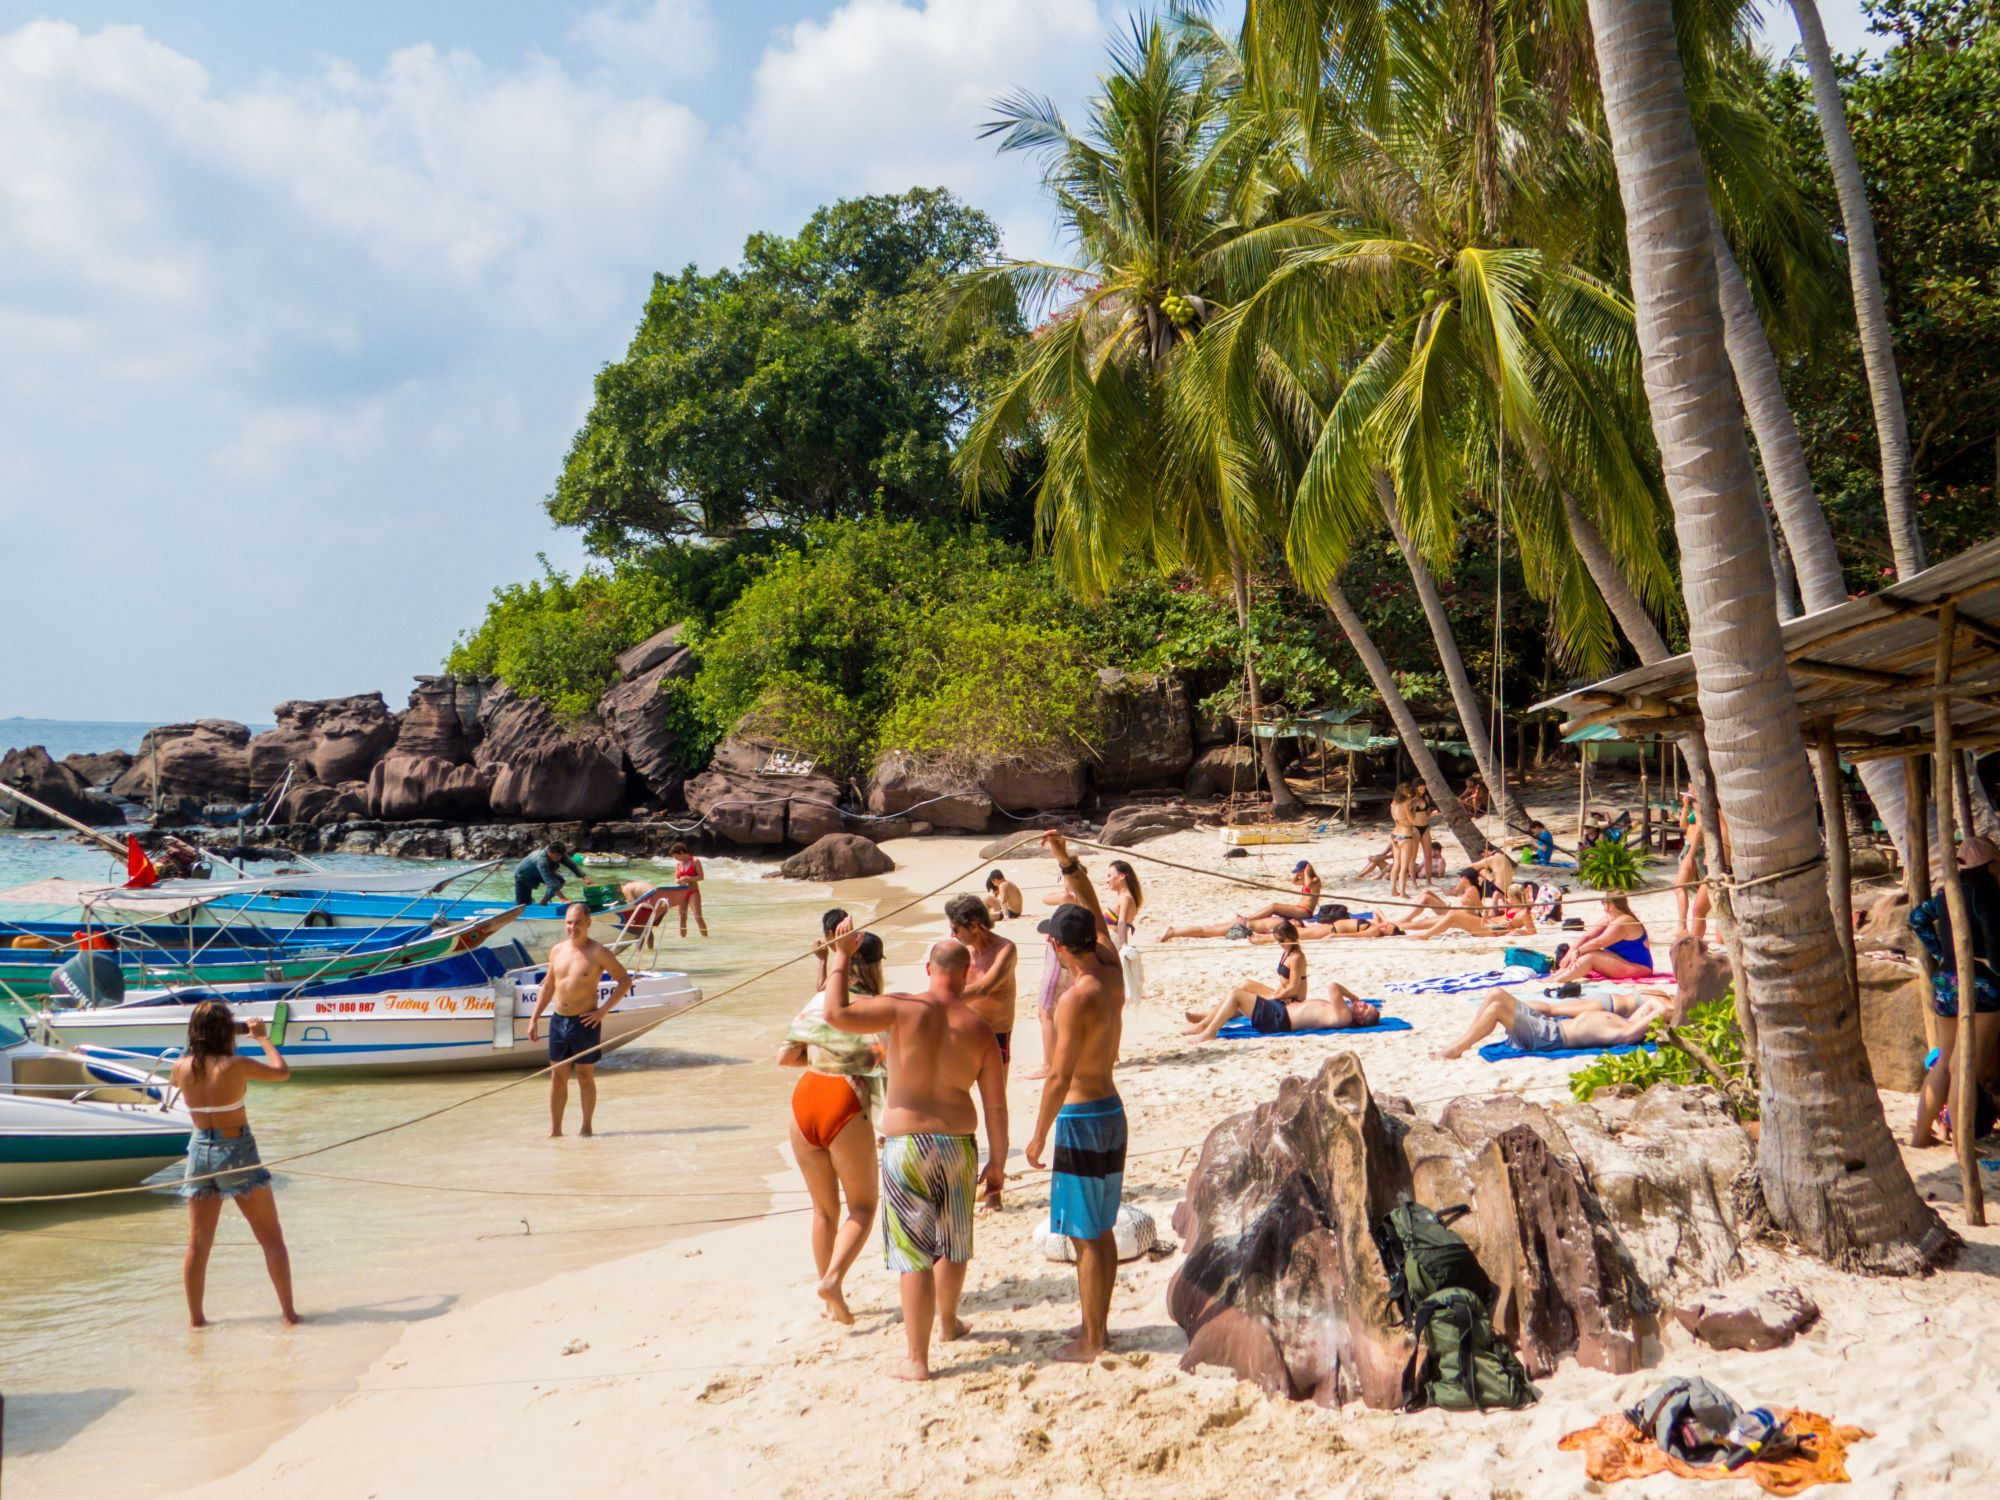 One of the most beautiful beaches in Vietnam